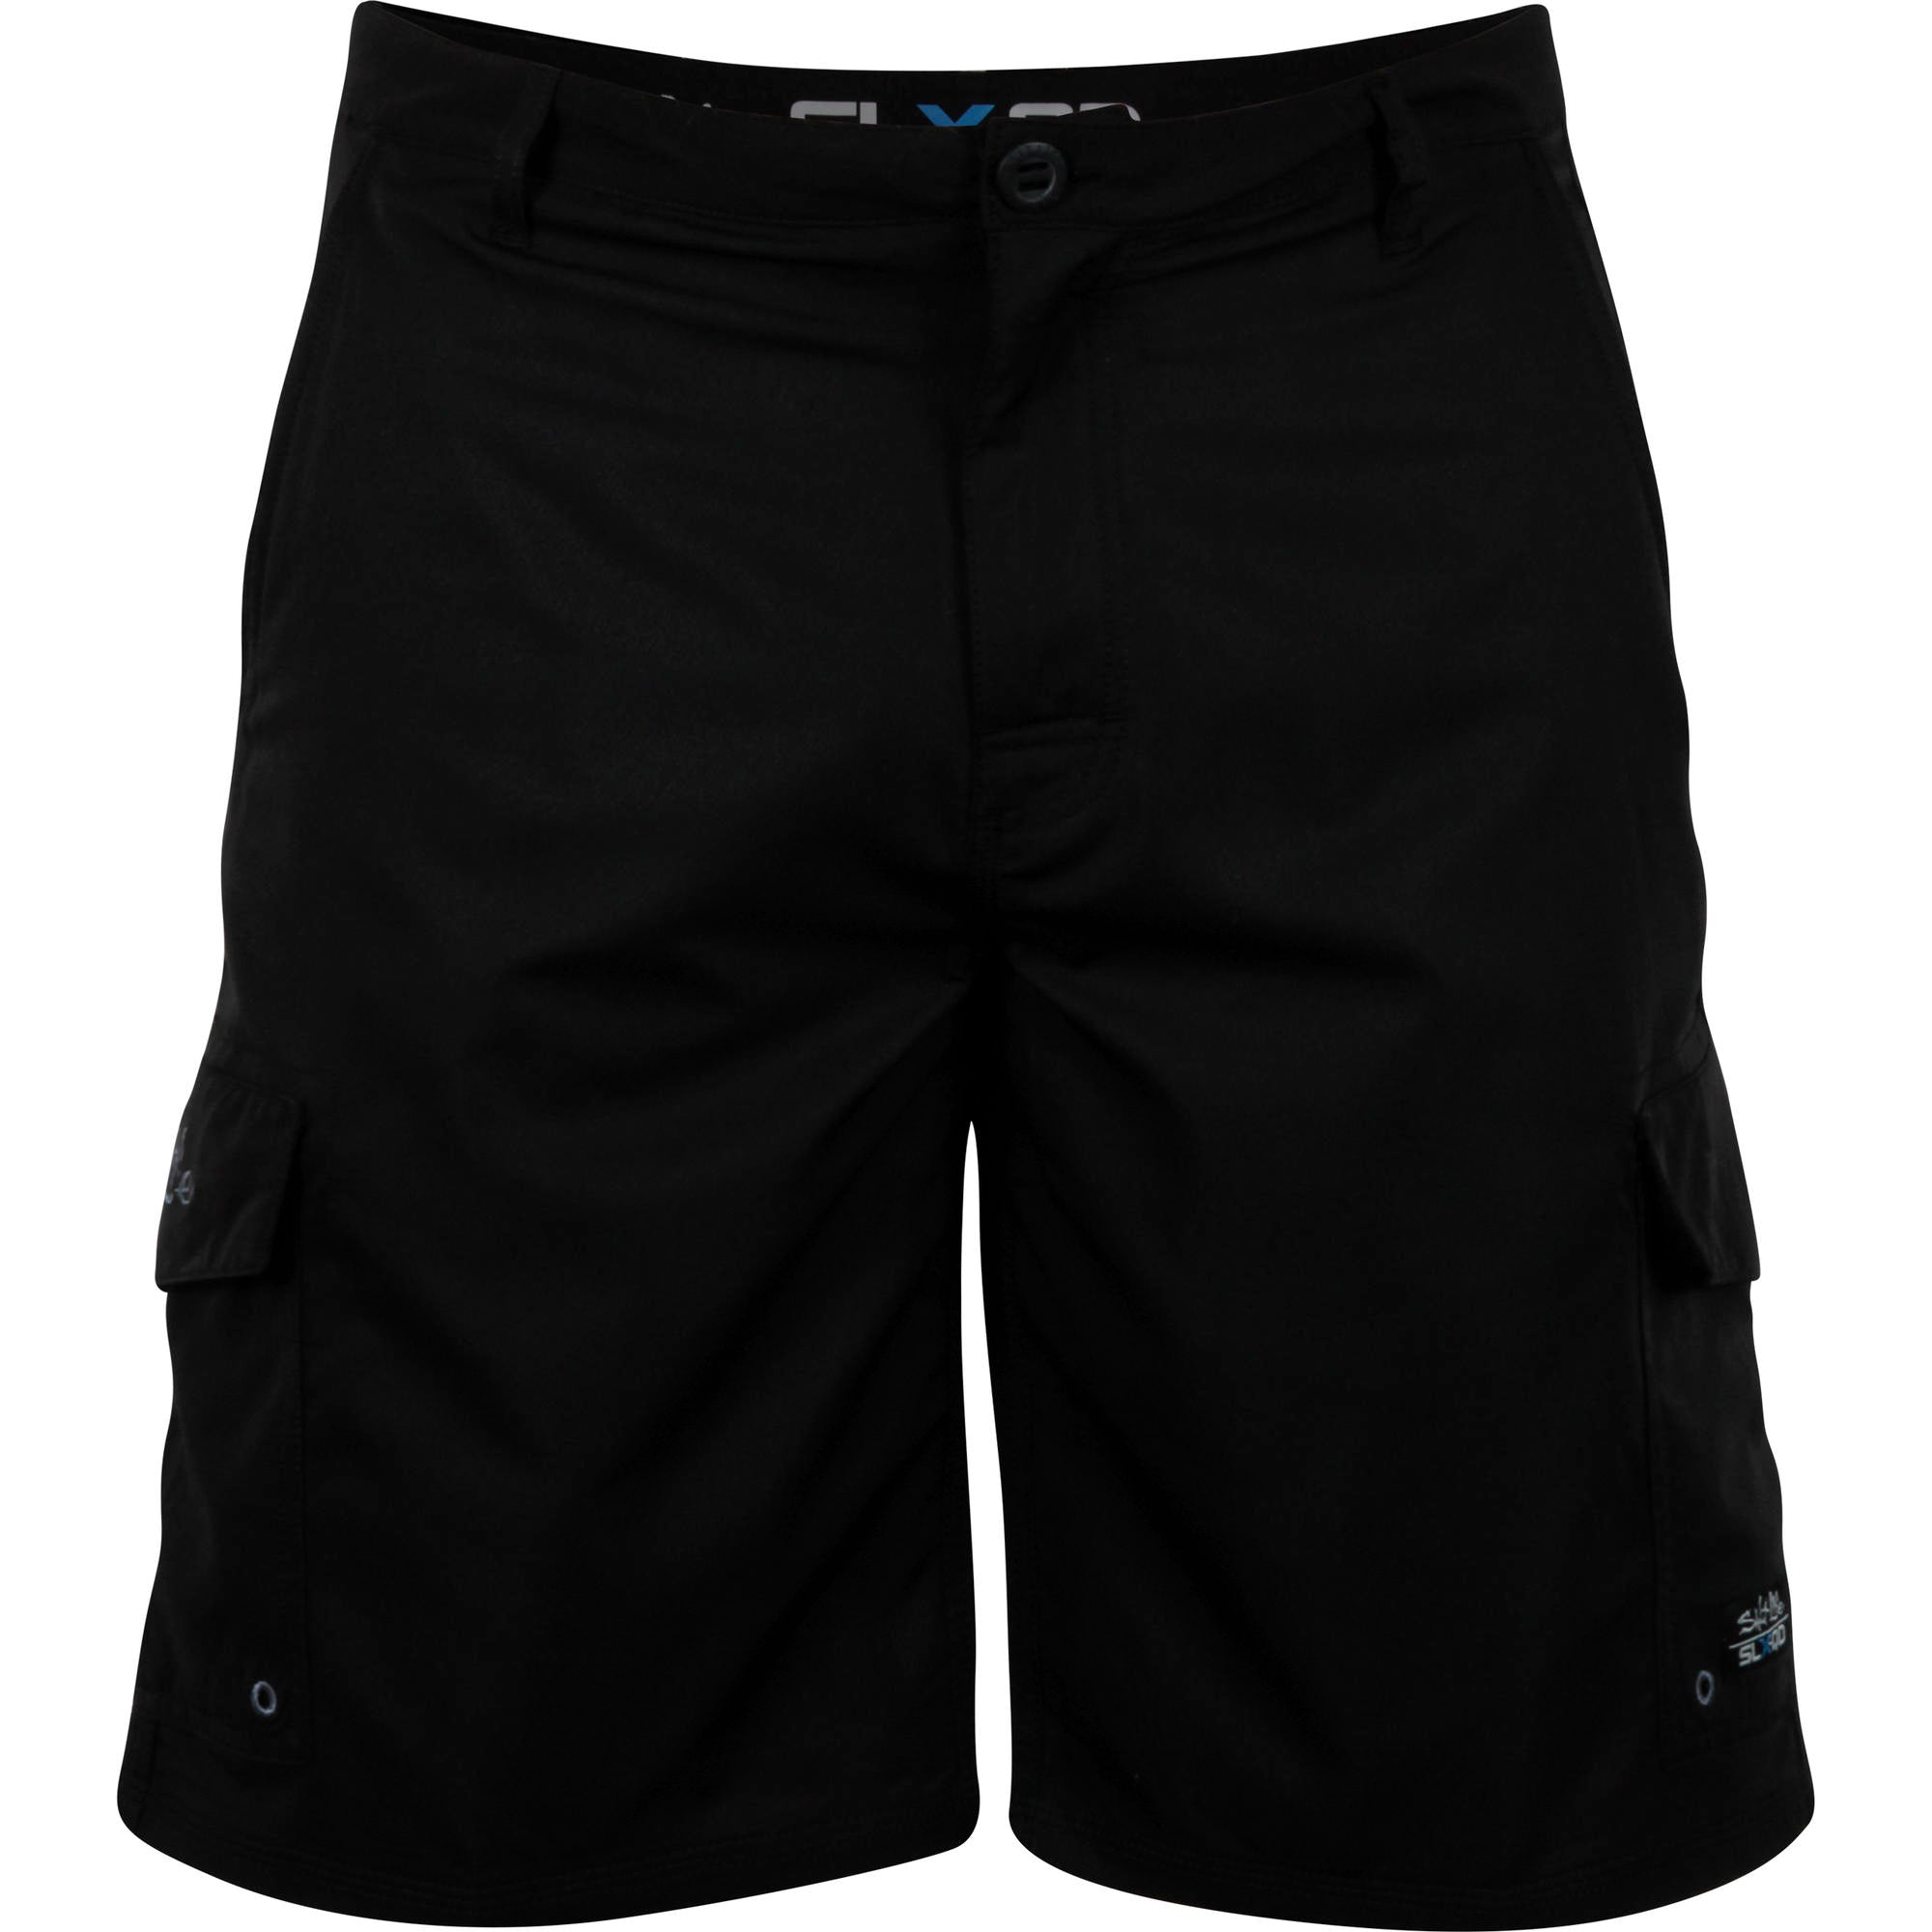 SALT LIFE - MENS LA VIDA SHORT